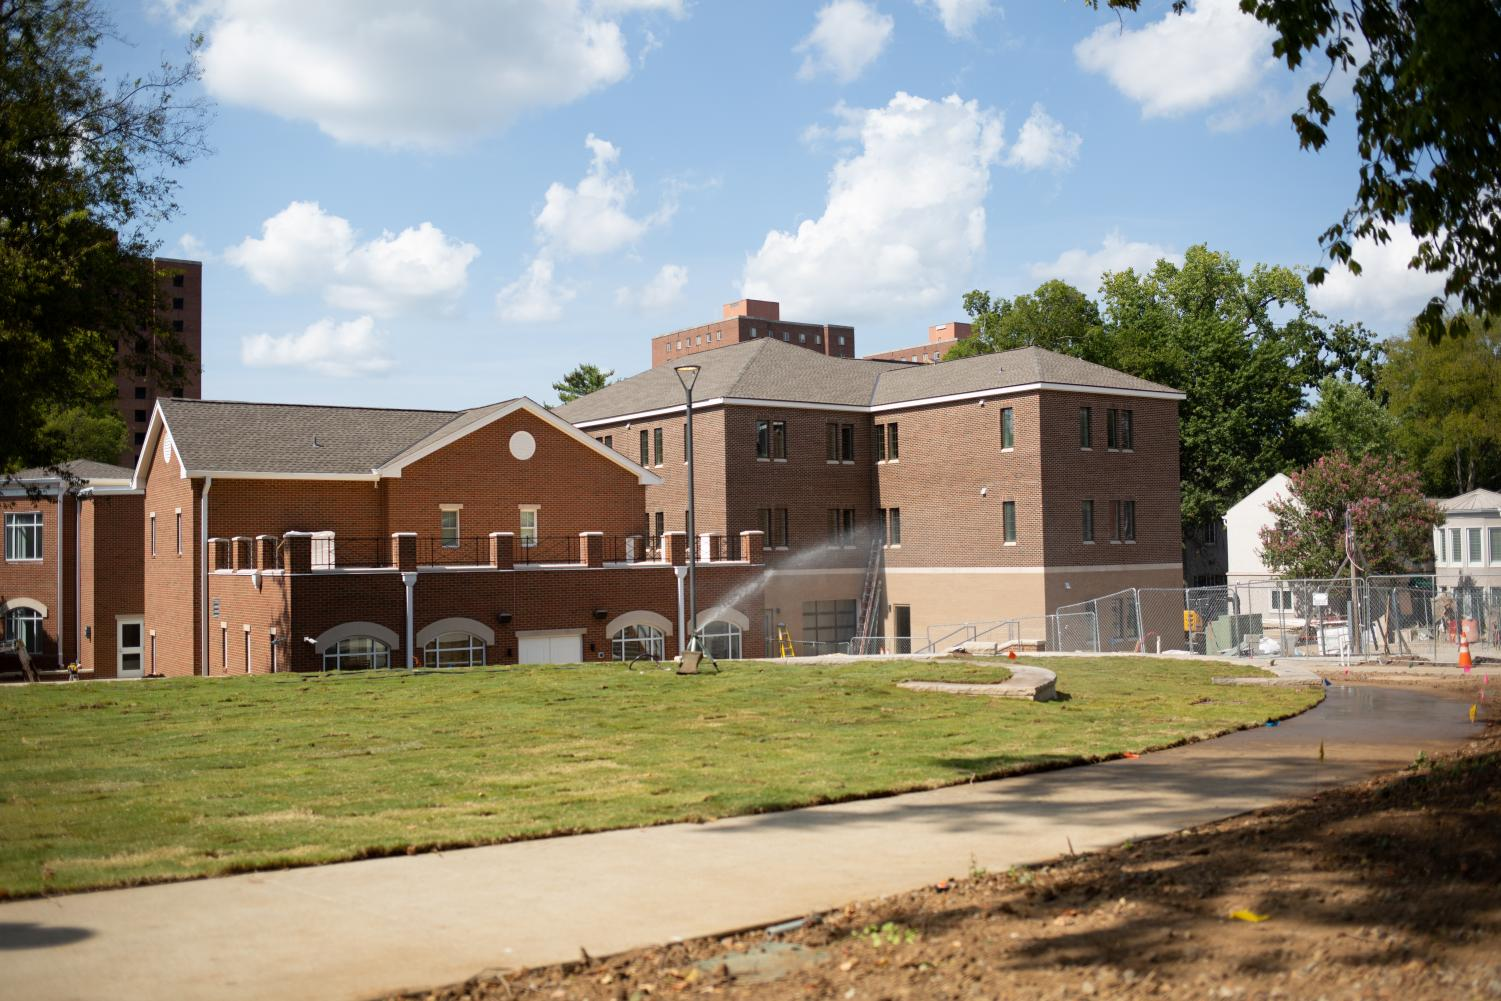 The new Zeta Tau Alpha (left) and NPHC (right) houses, as seen from the green.